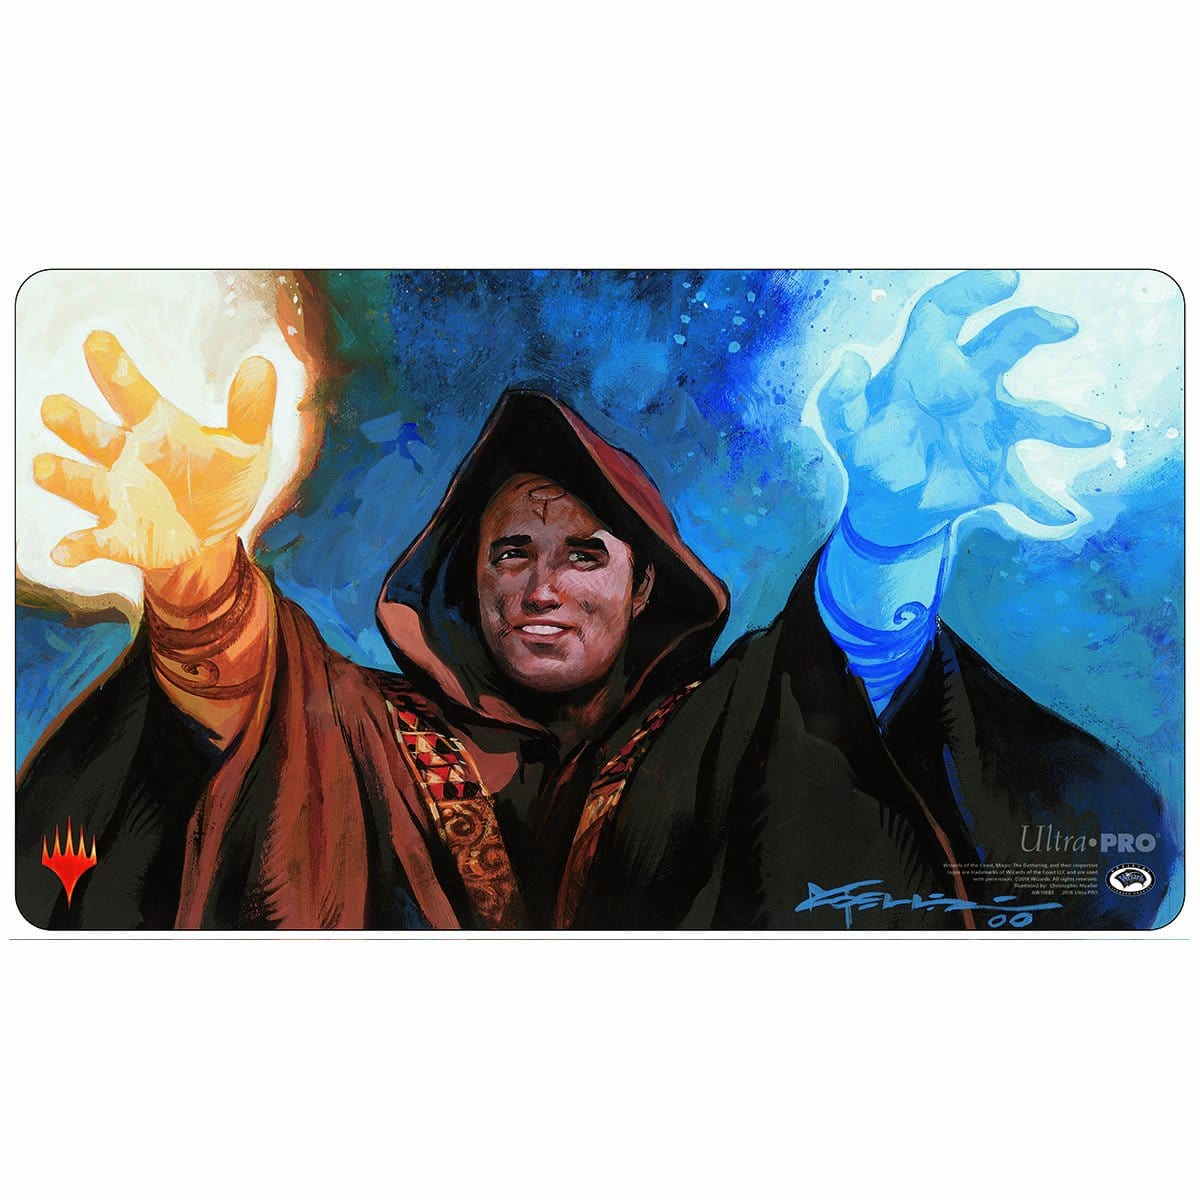 Meddling Mage Playmat - Playmat - Original Magic Art - Accessories for Magic the Gathering and other card games